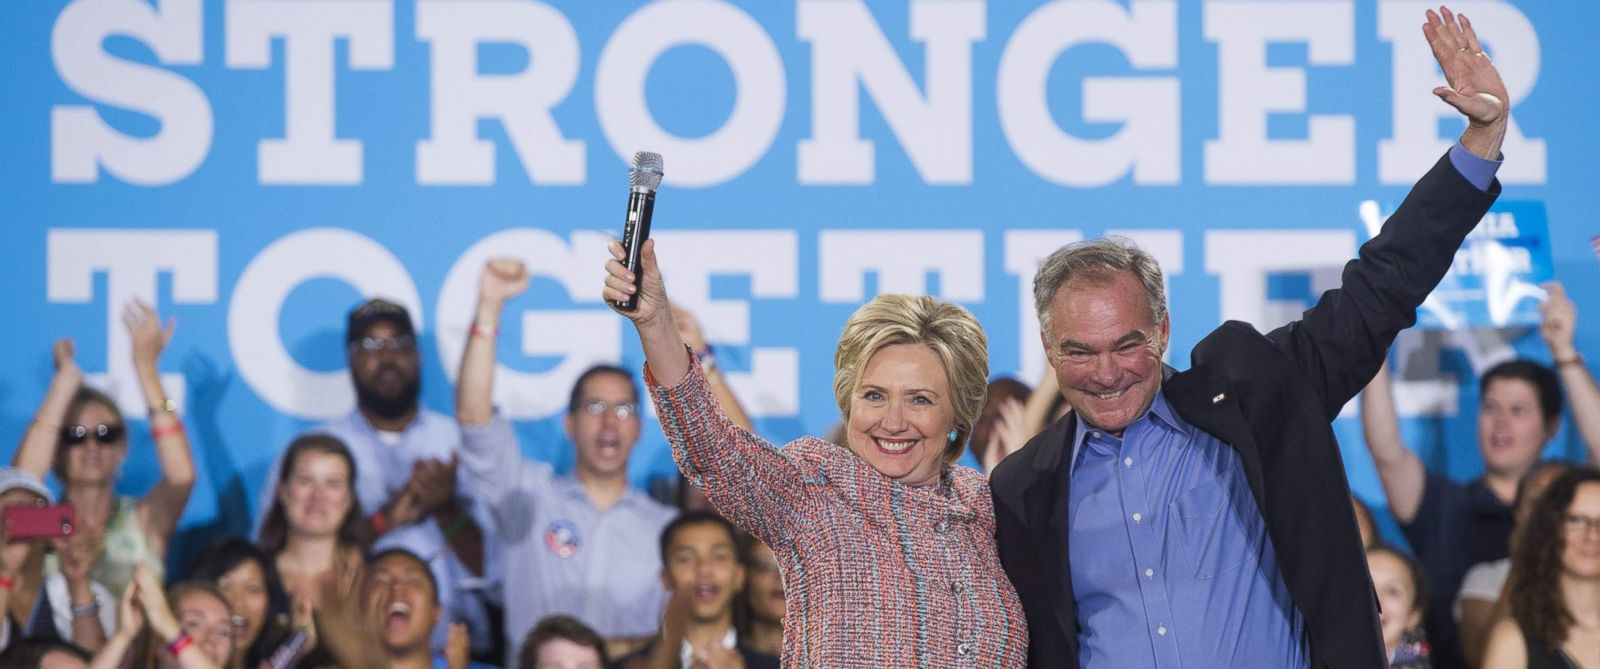 Hillary Clinton introducing Tim Kaine as her running mate. Saul Loeb/AFP/Getty Images